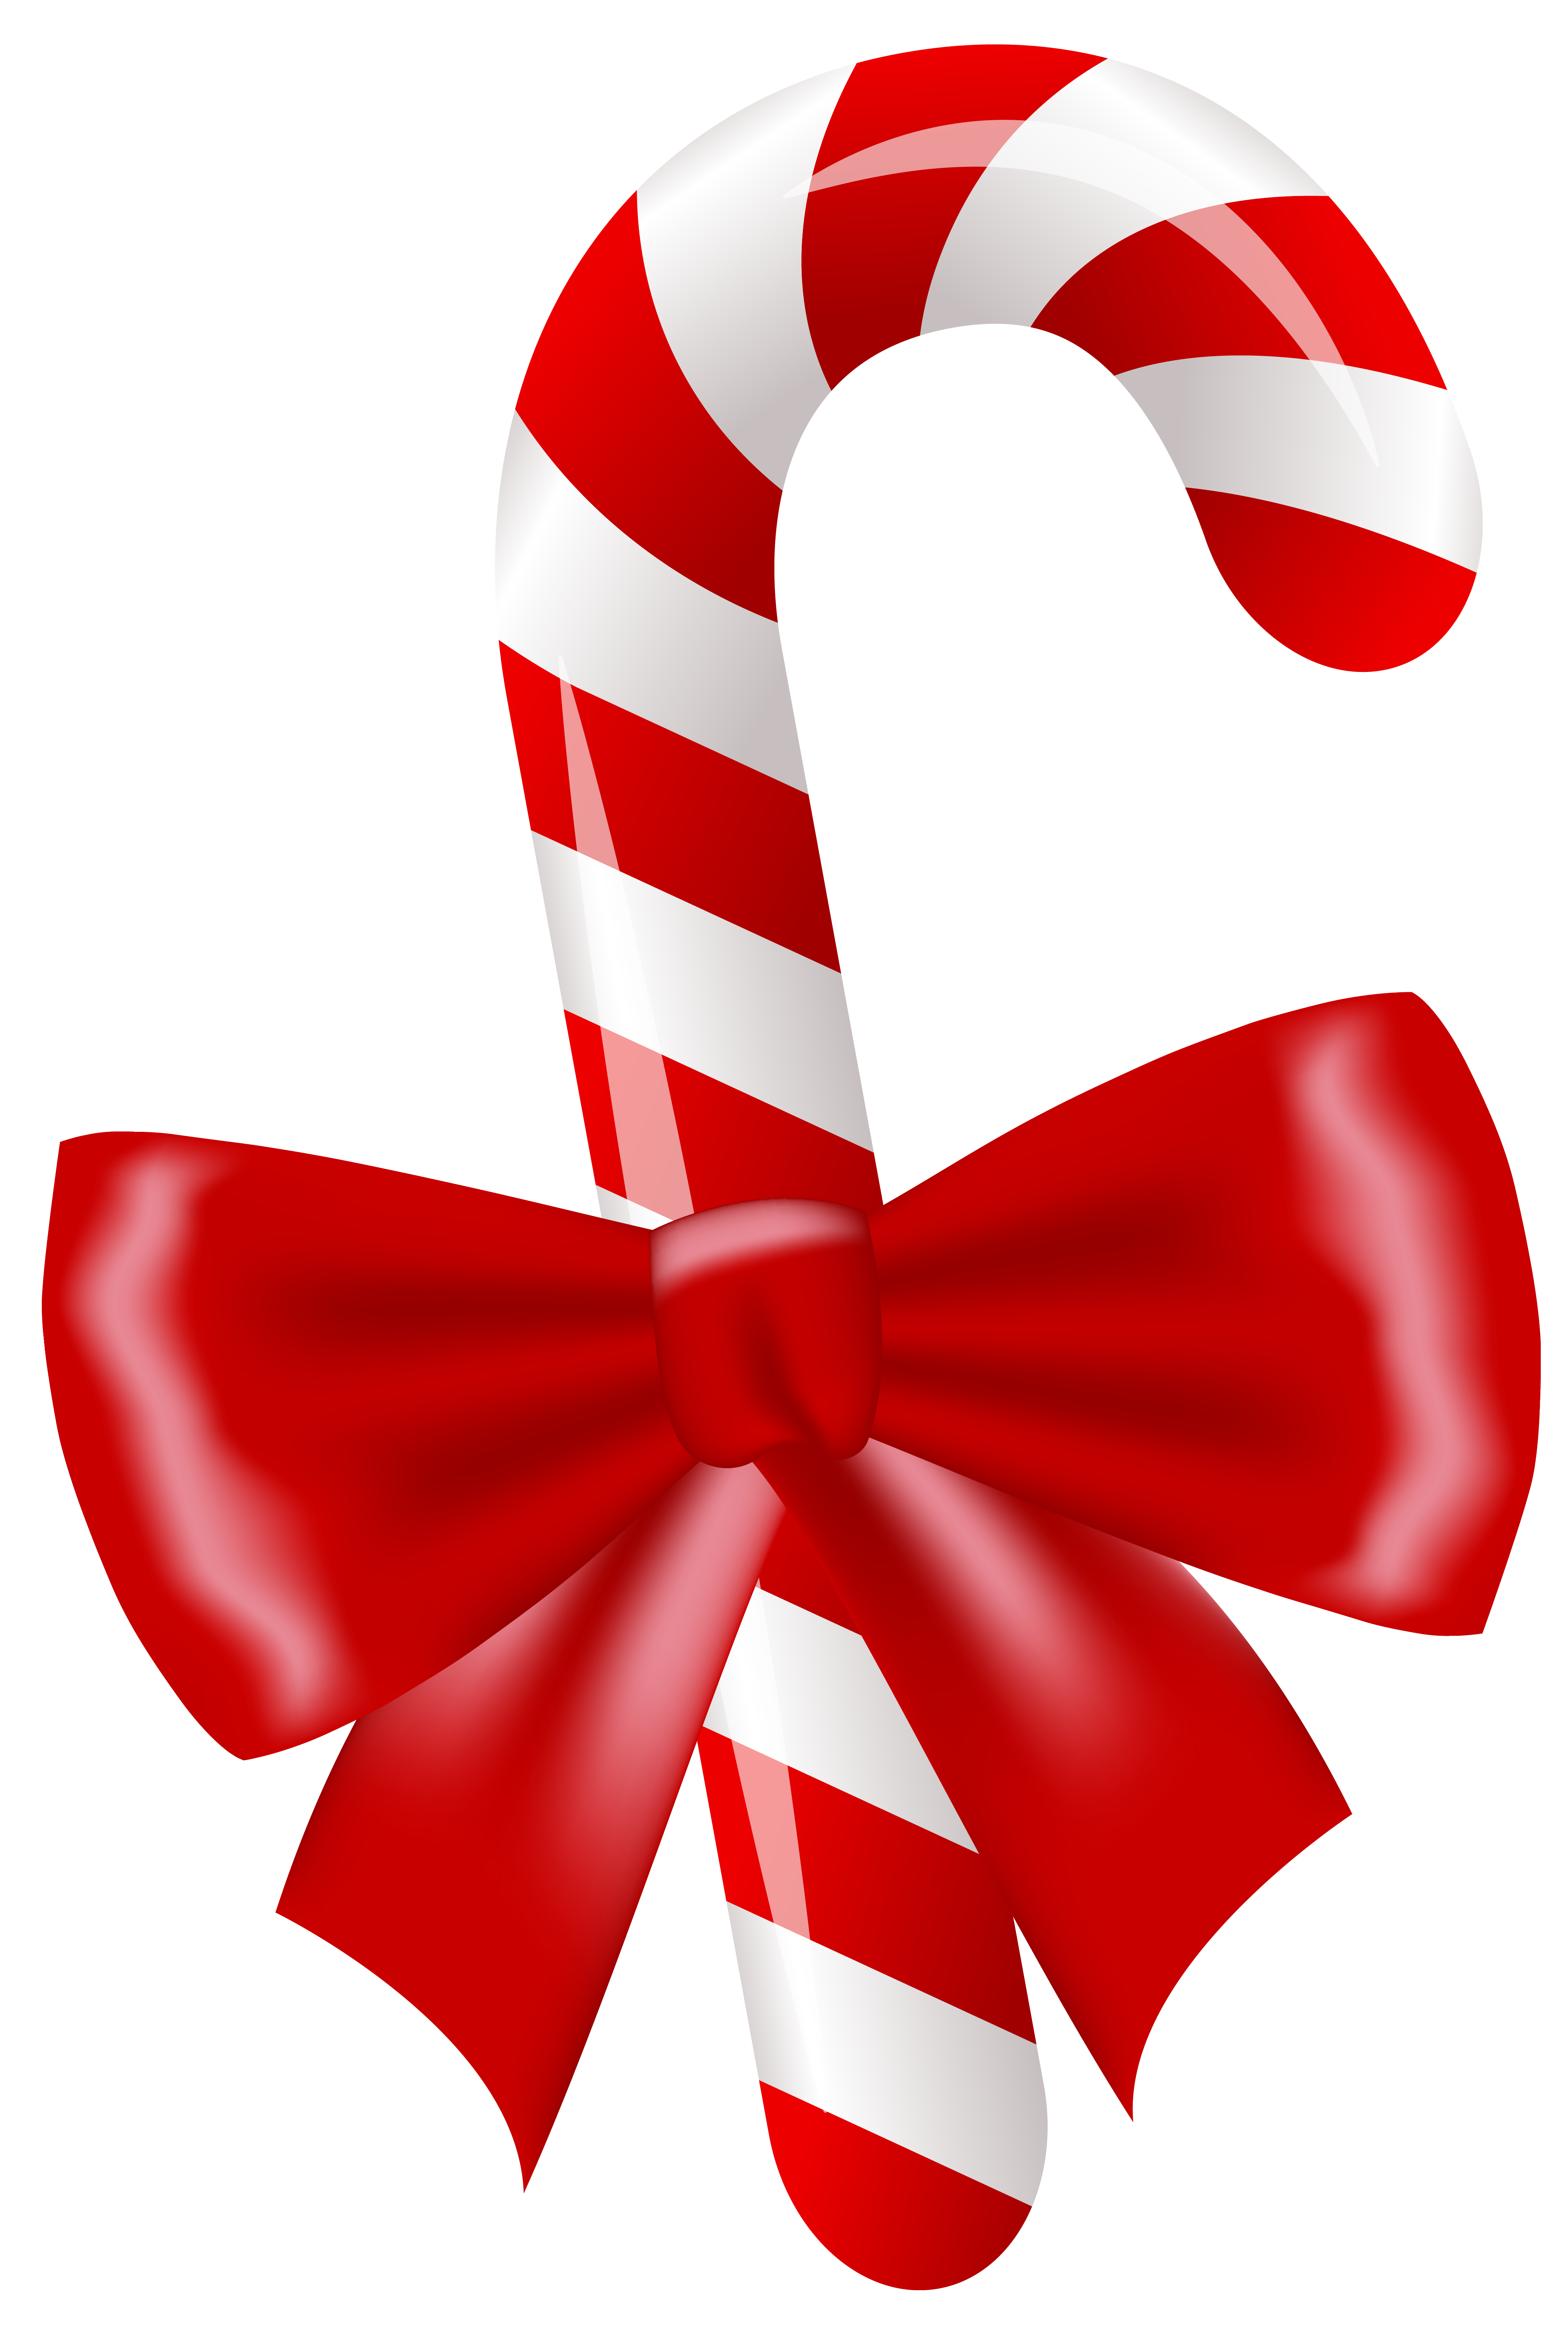 Christmas candy clipart - Clipground